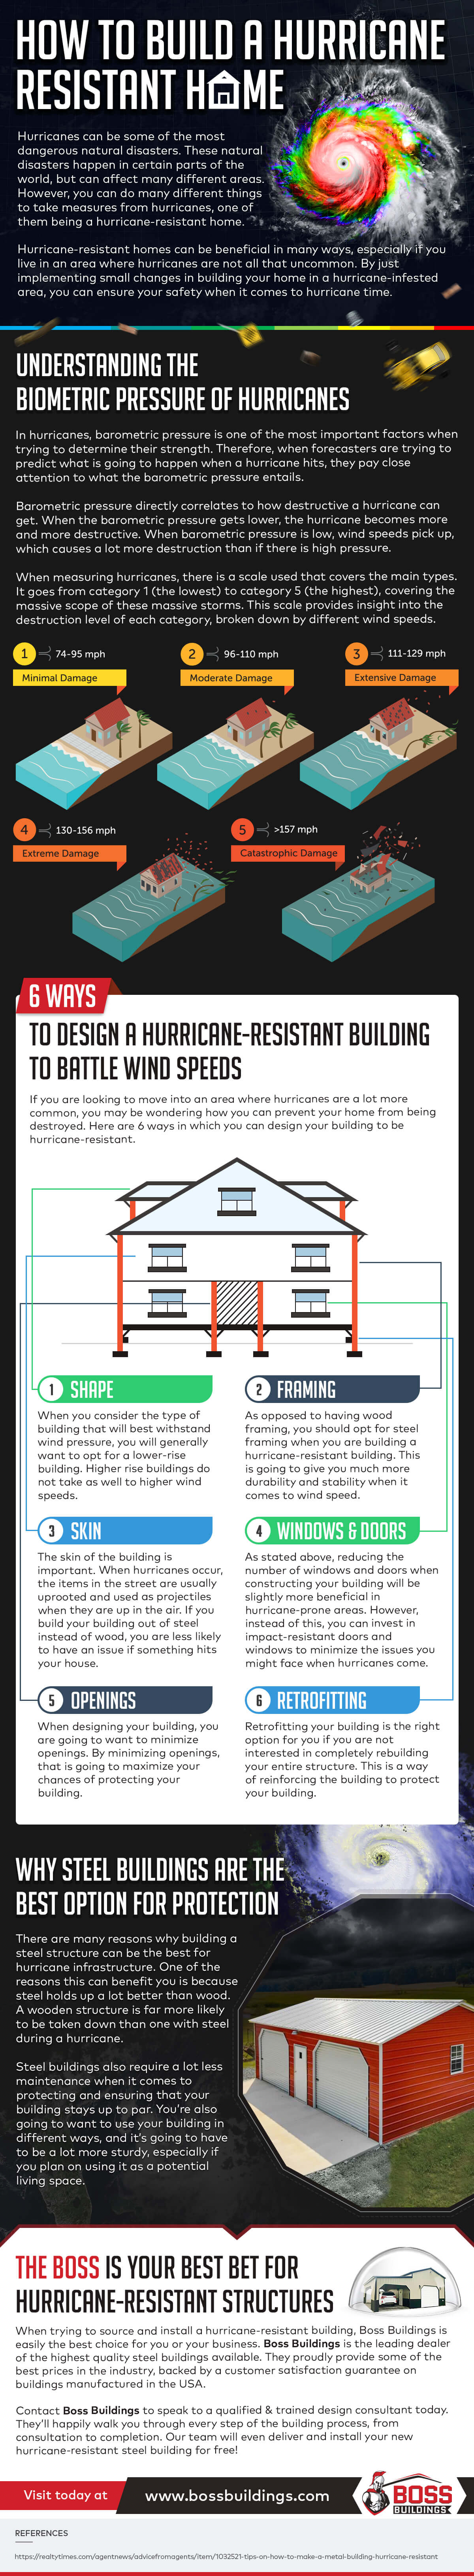 Why You Should Build a Hurricane Resistant Home